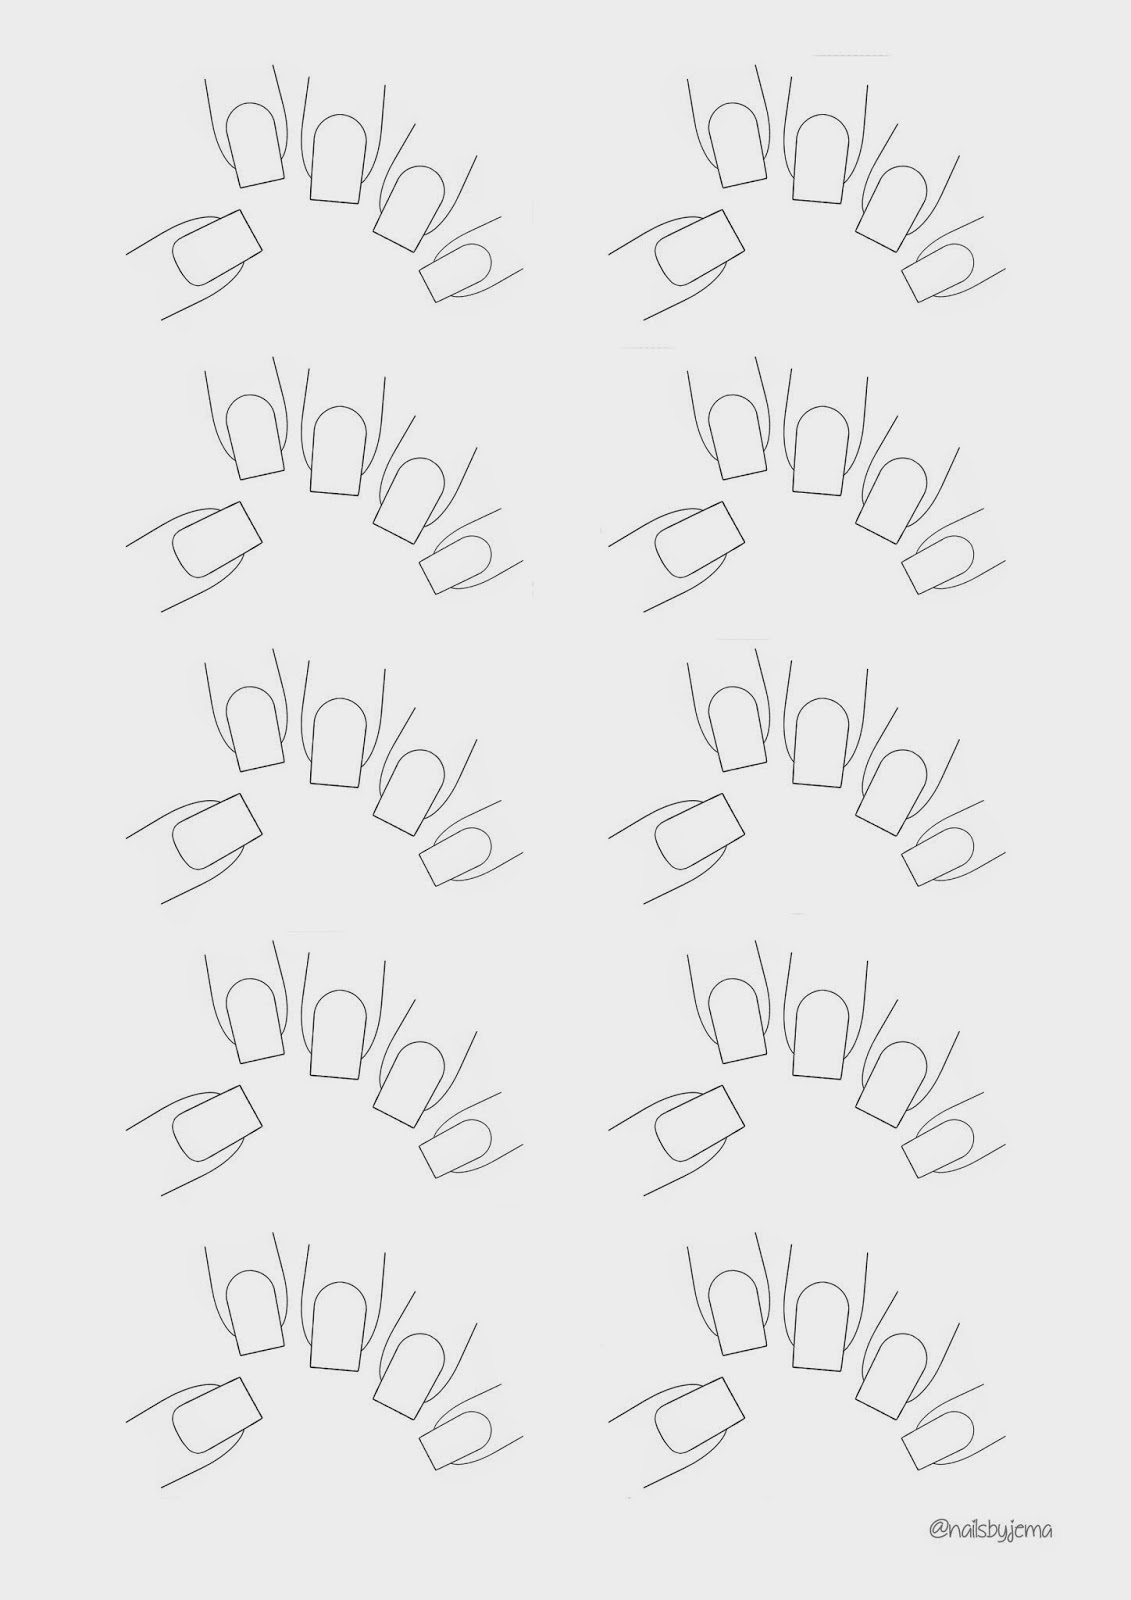 N A I L S B Y J E M A: Blank Nail Template For Your Nail Art